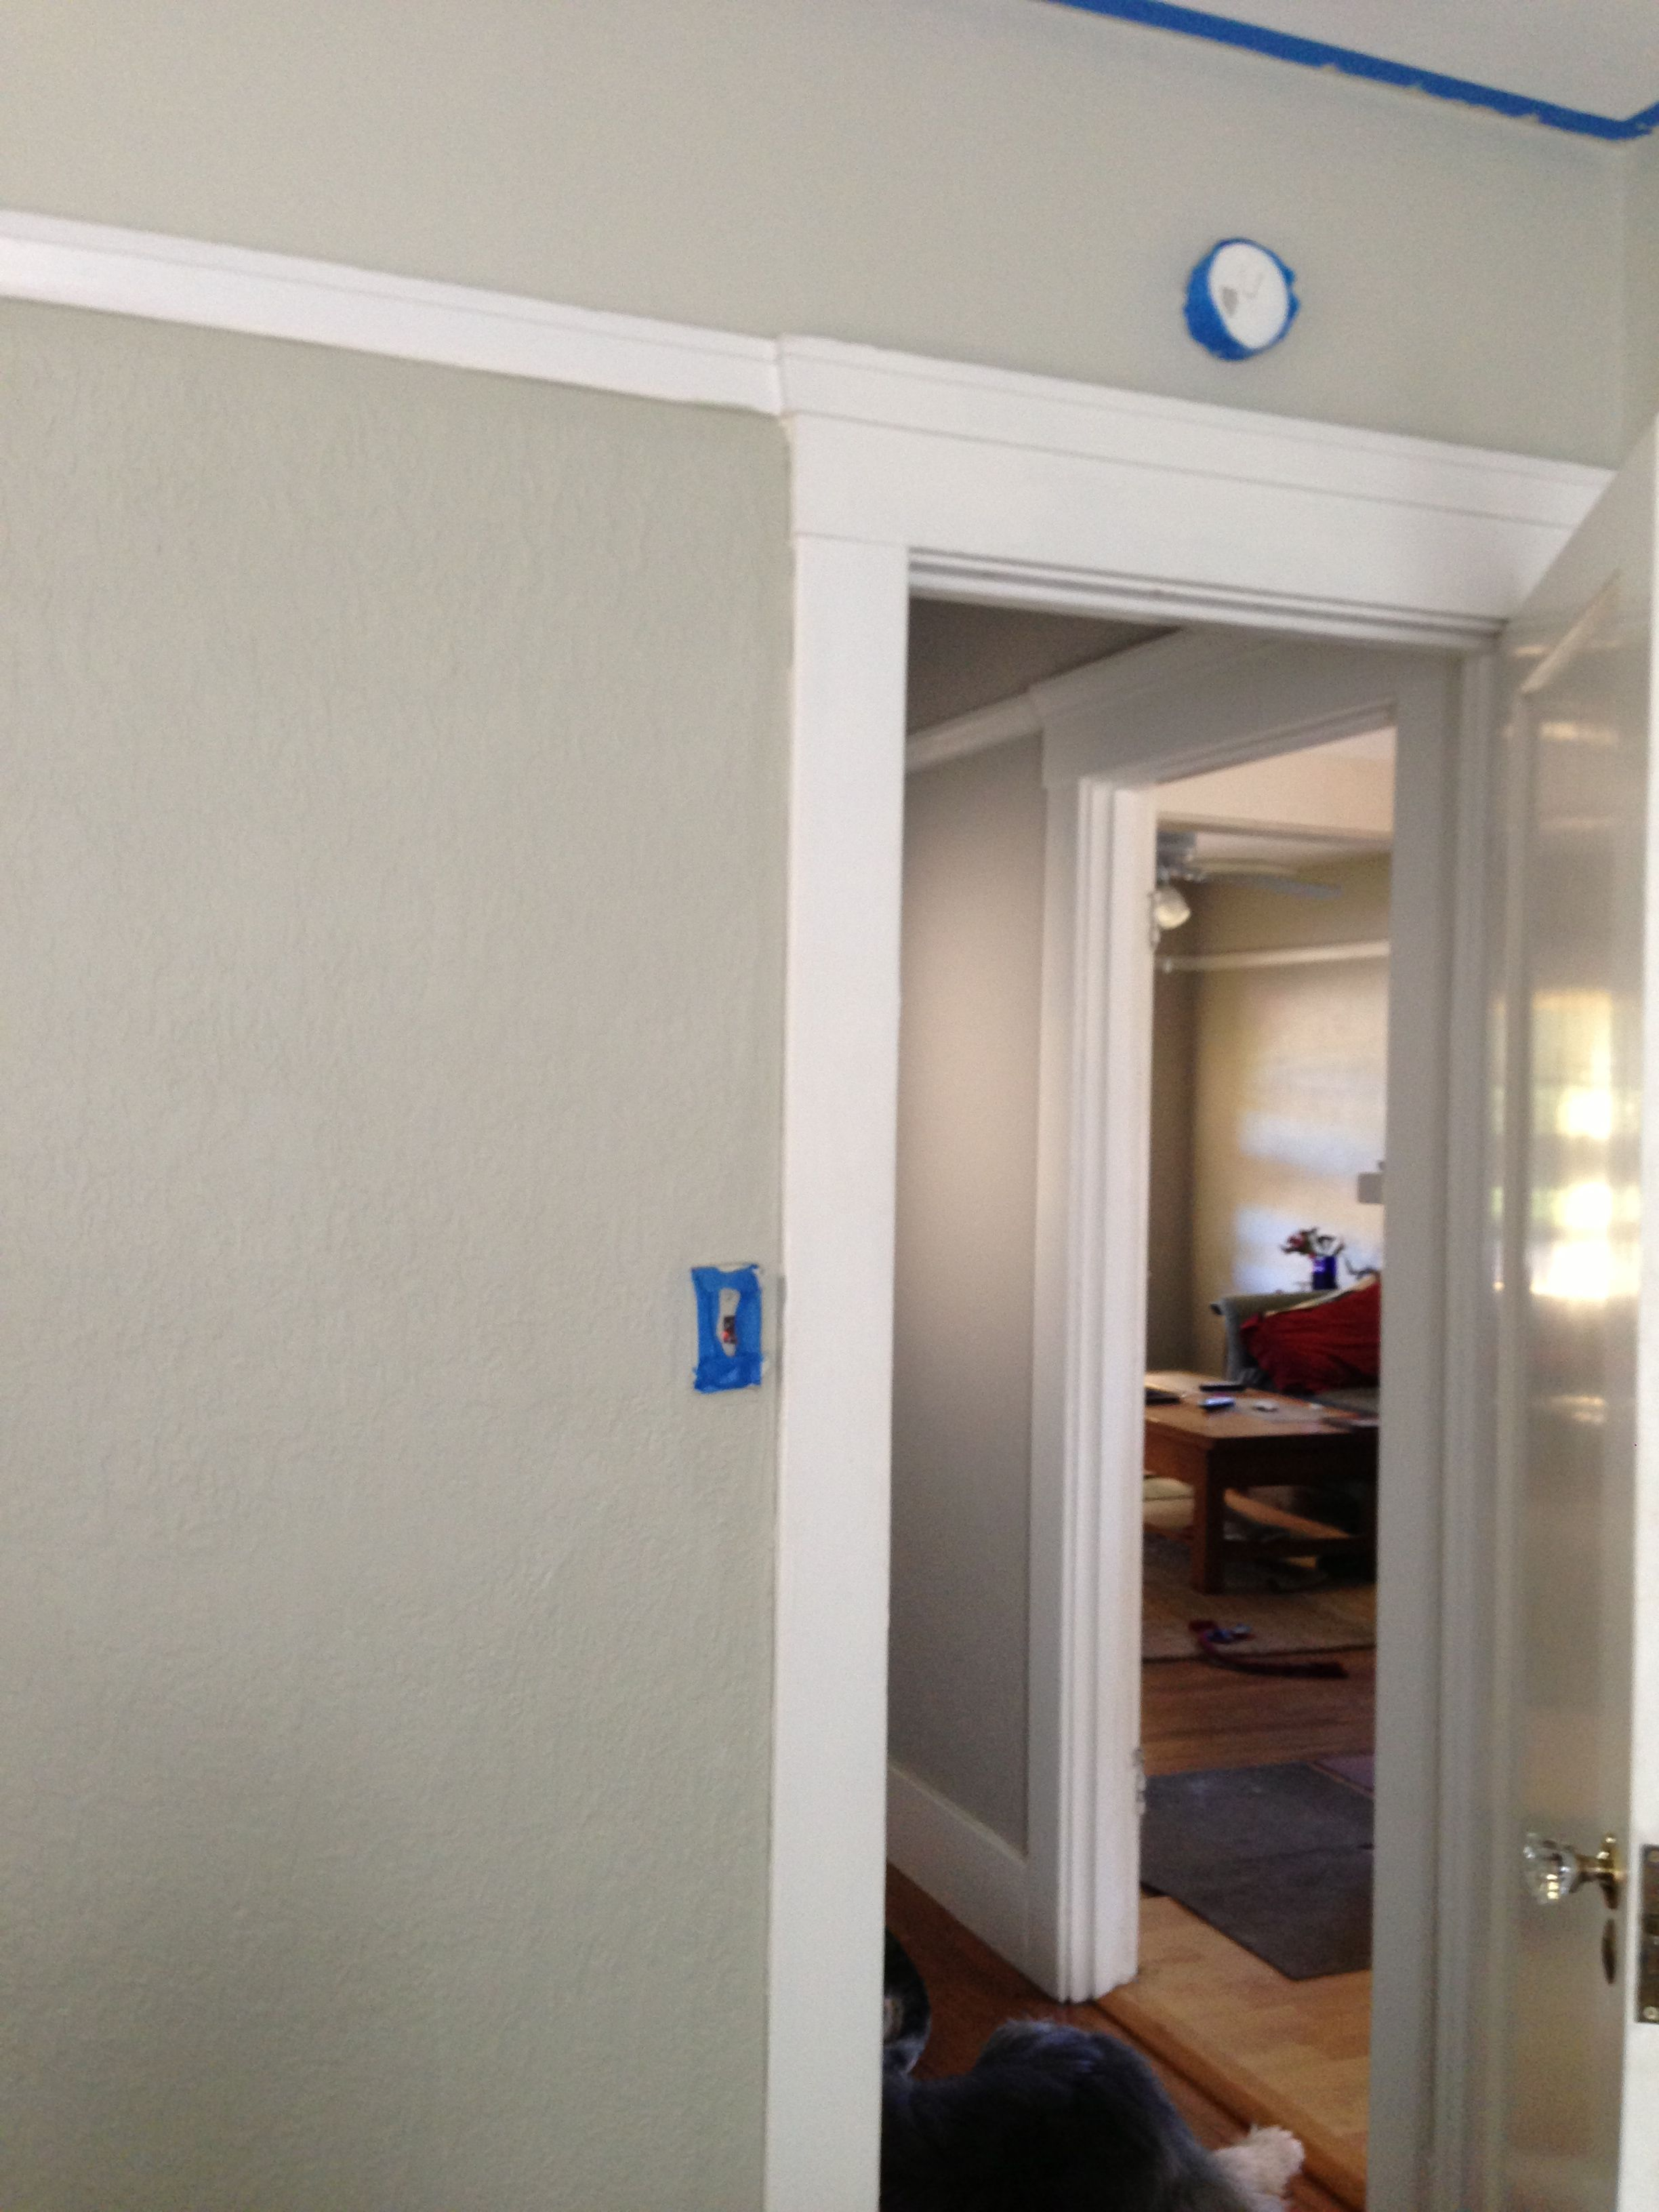 Bedroom Color Benjamin Moore Paris Rain Eggshell Diluted 50 Above Picture Rail Ceiling Is